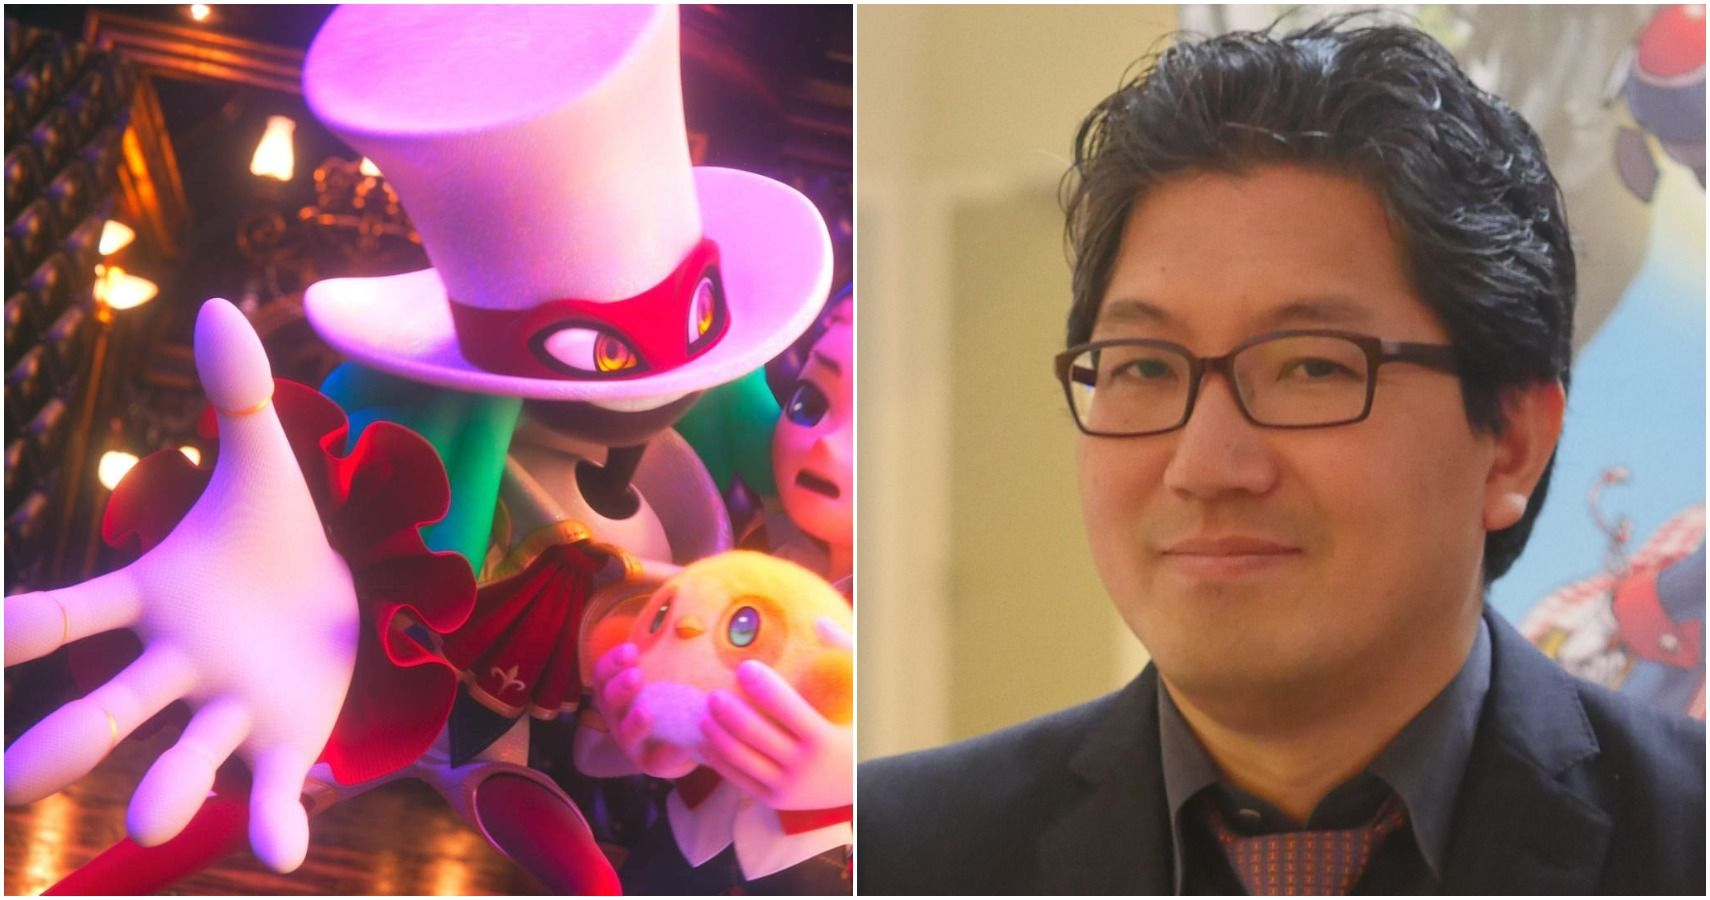 Sonic Co-Creator Yuji Naka Appears To Have Left Square Enix Following Balan Wonderworld Disappointment